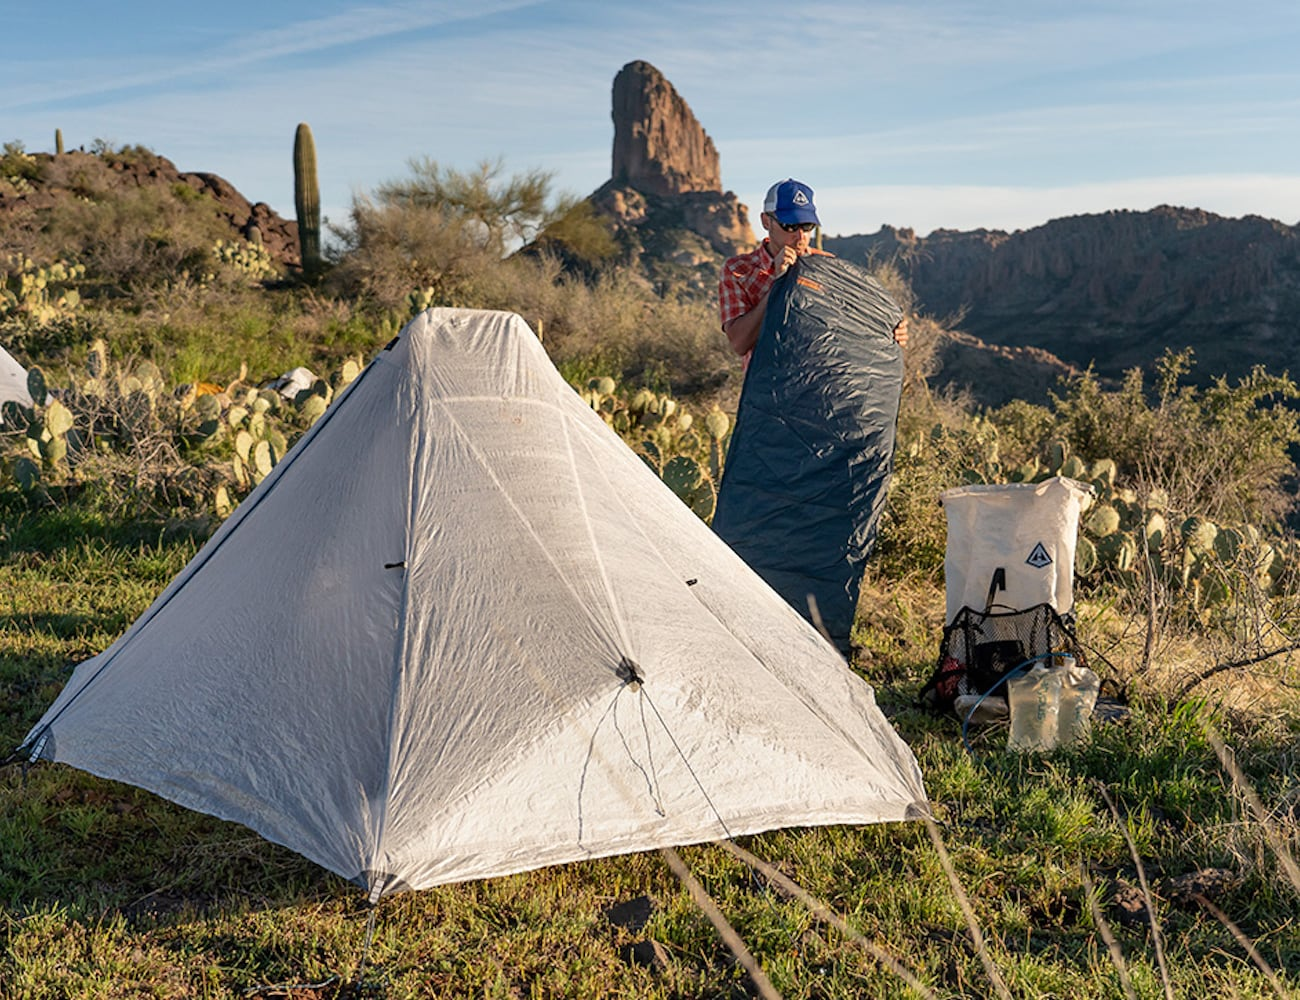 Dirigo 2 Ultralight Backpacking Tent offers the ultimate protection